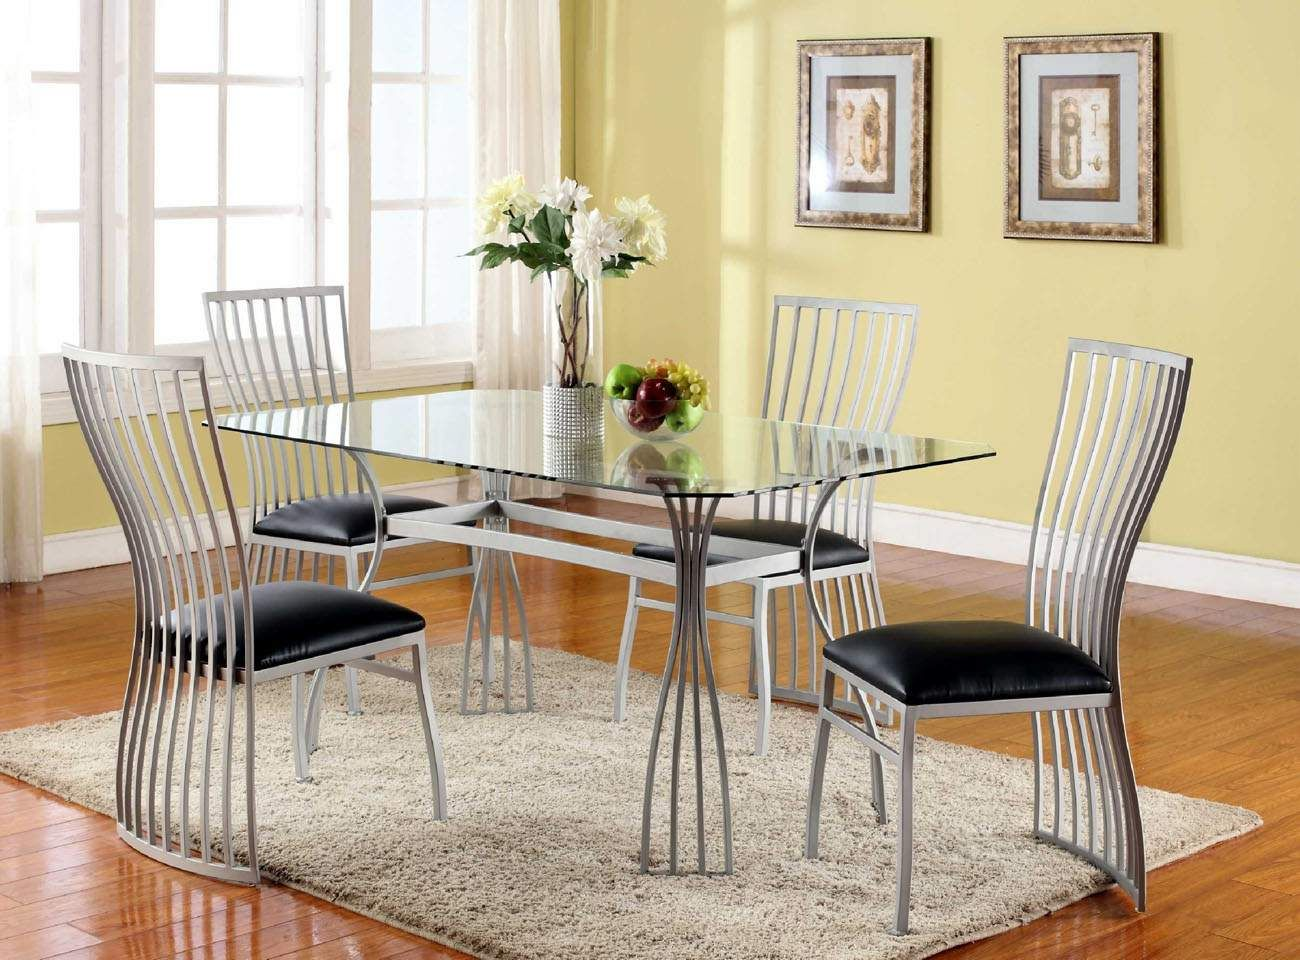 Dining room desainideas for Breakfast room furniture ideas